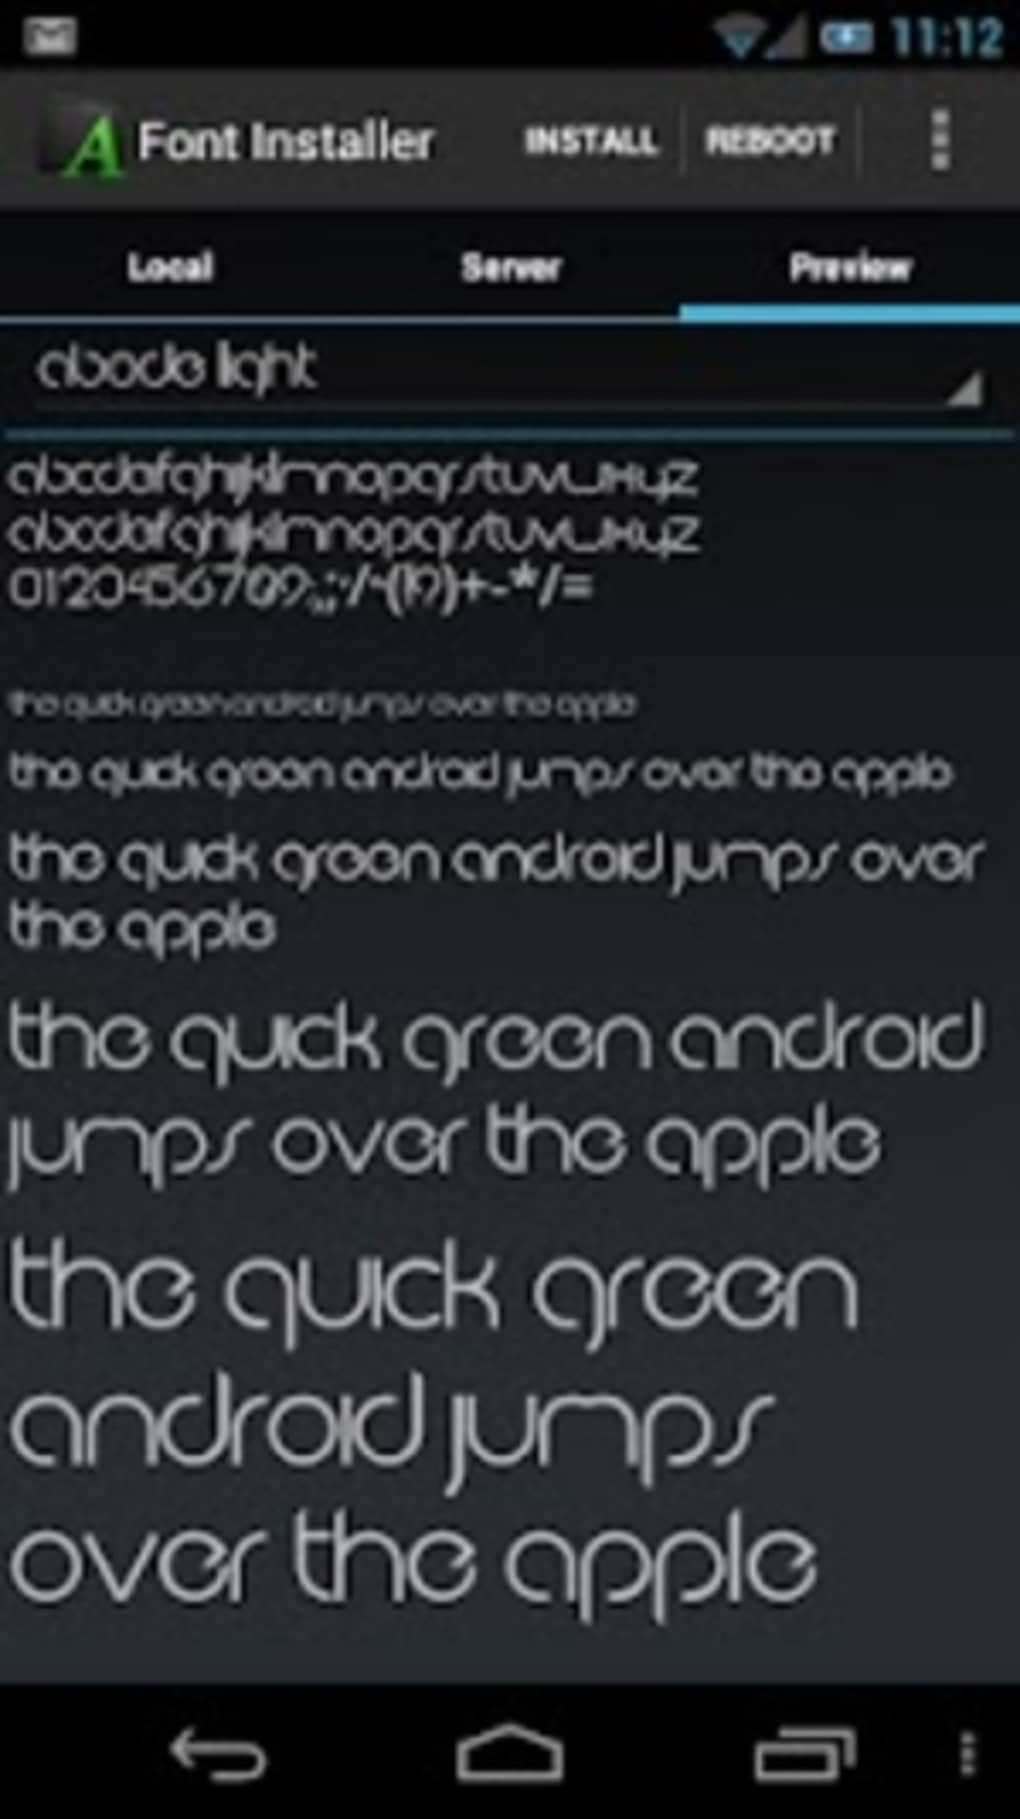 Font Installer for Android - Download